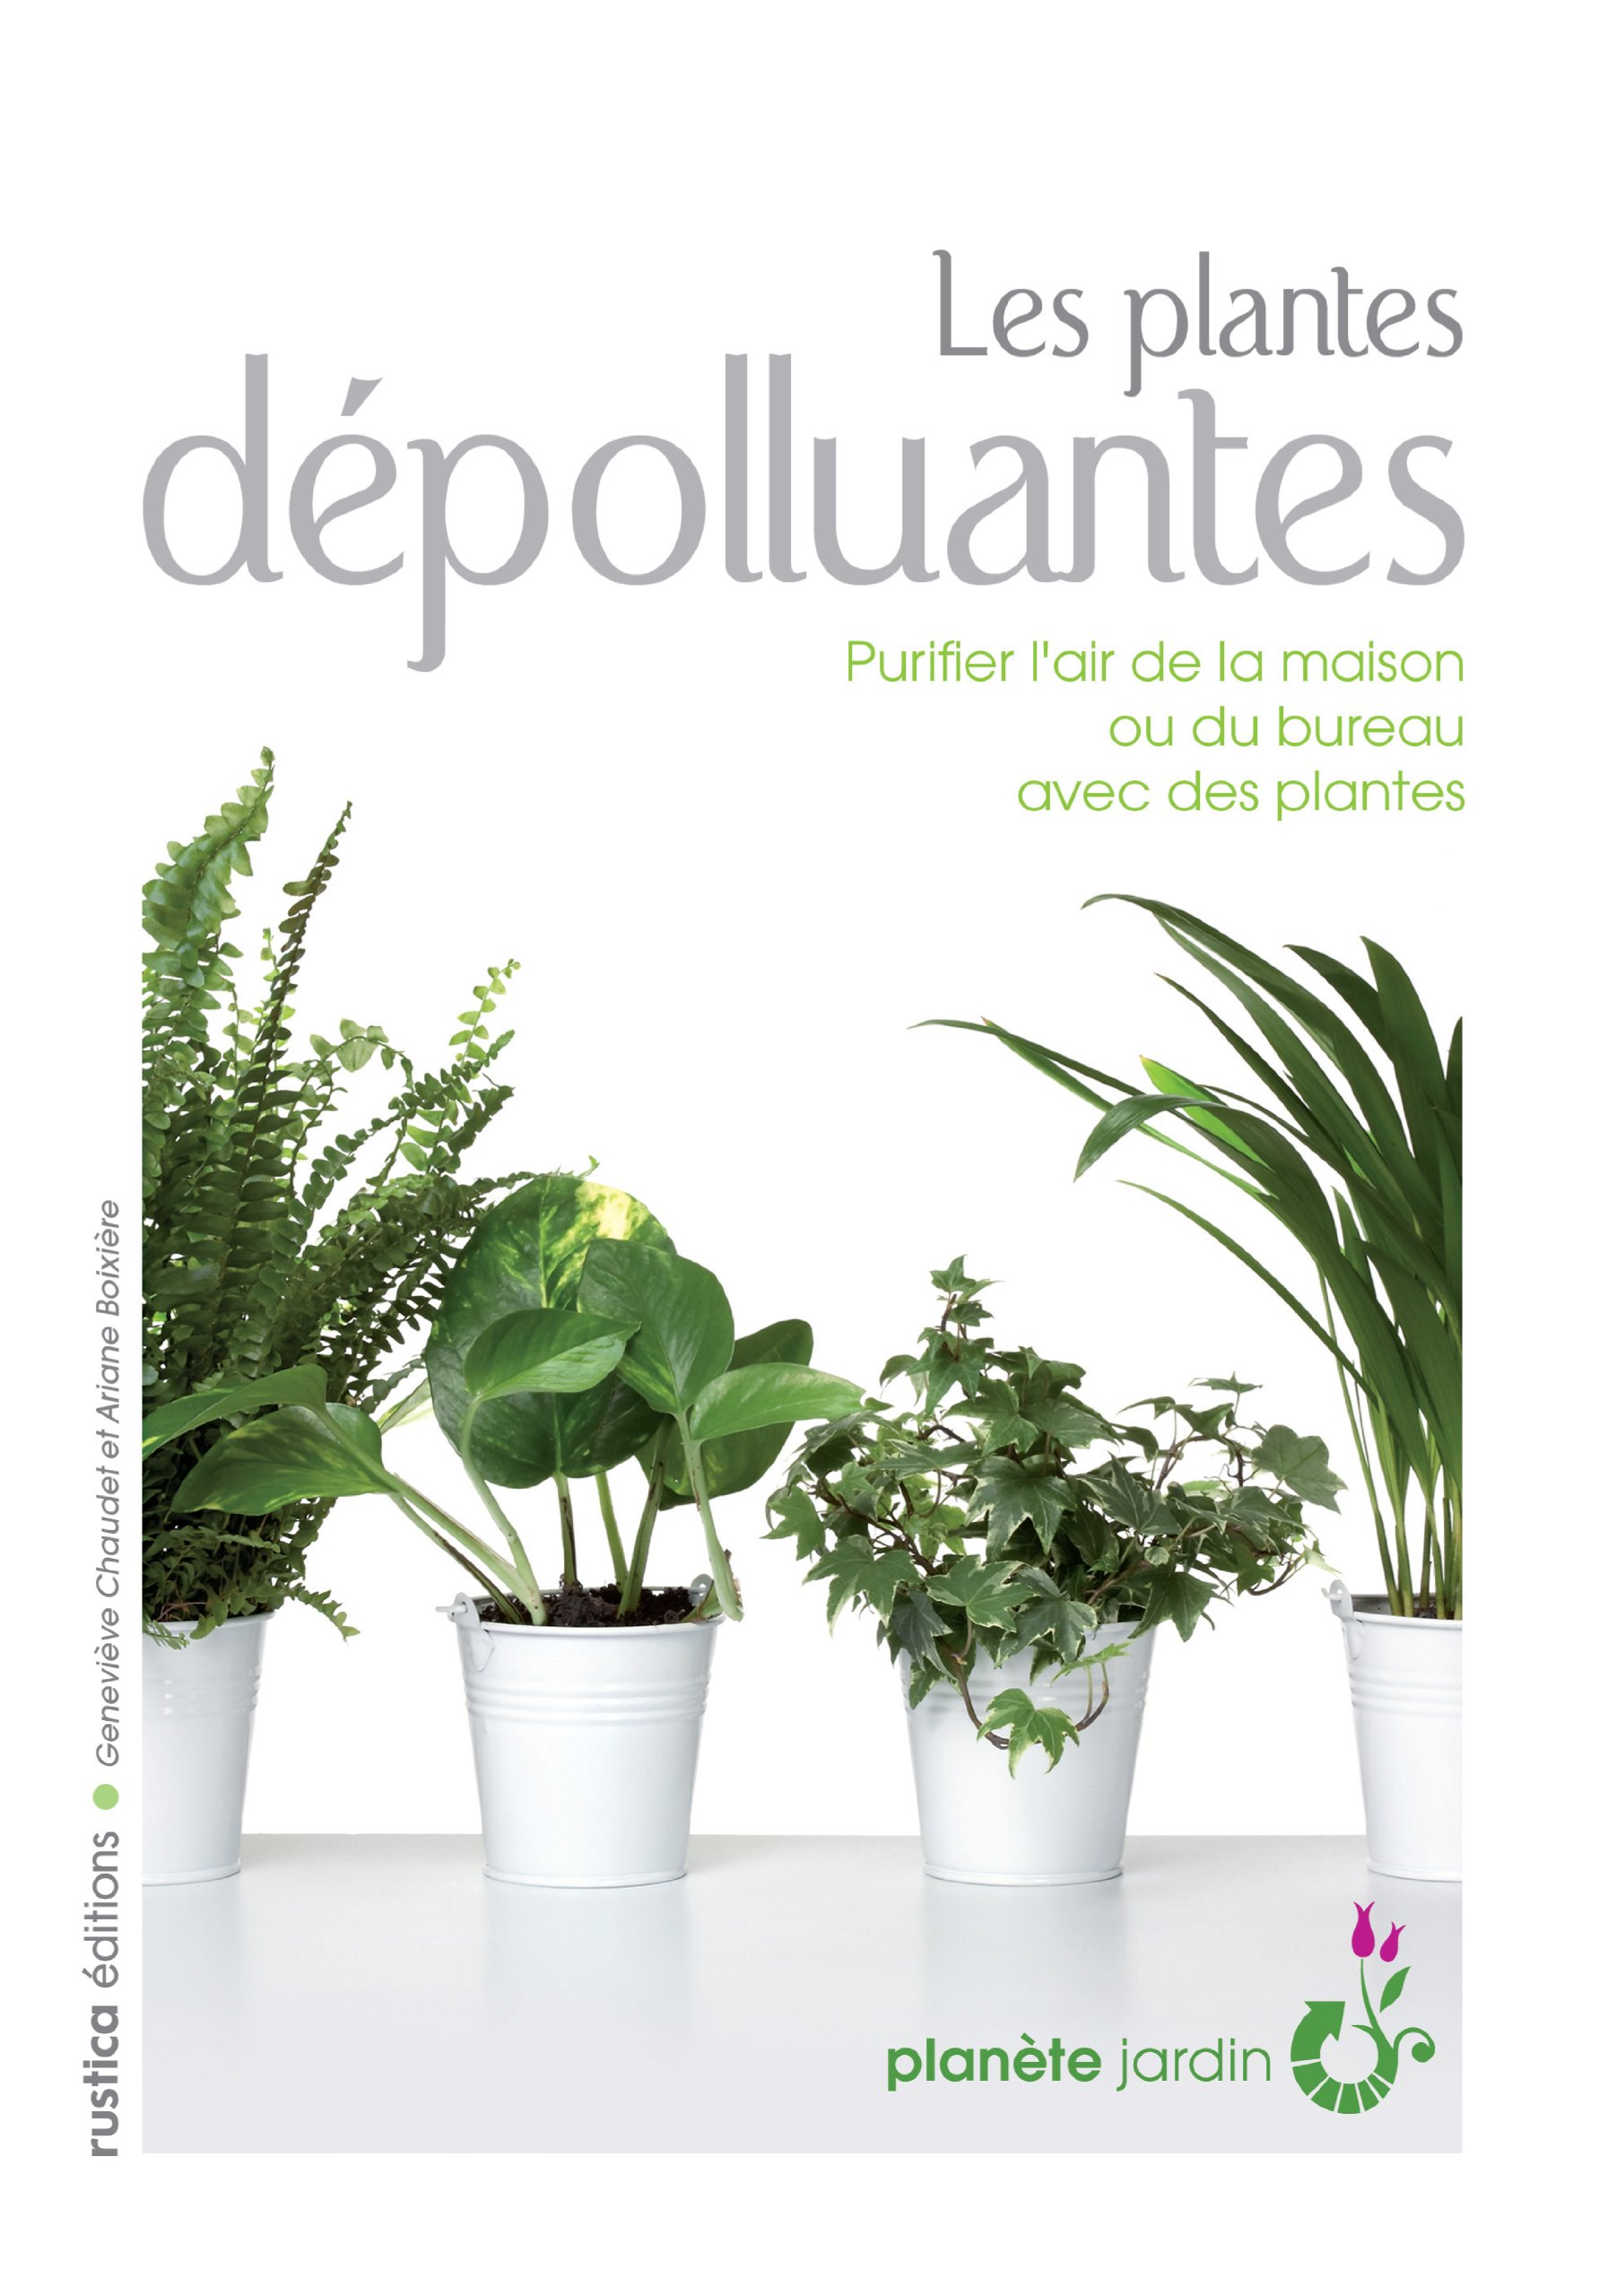 plante dpolluante interieur dpolluez luintrieur de chez vous avec la fougre plante dpolluante. Black Bedroom Furniture Sets. Home Design Ideas